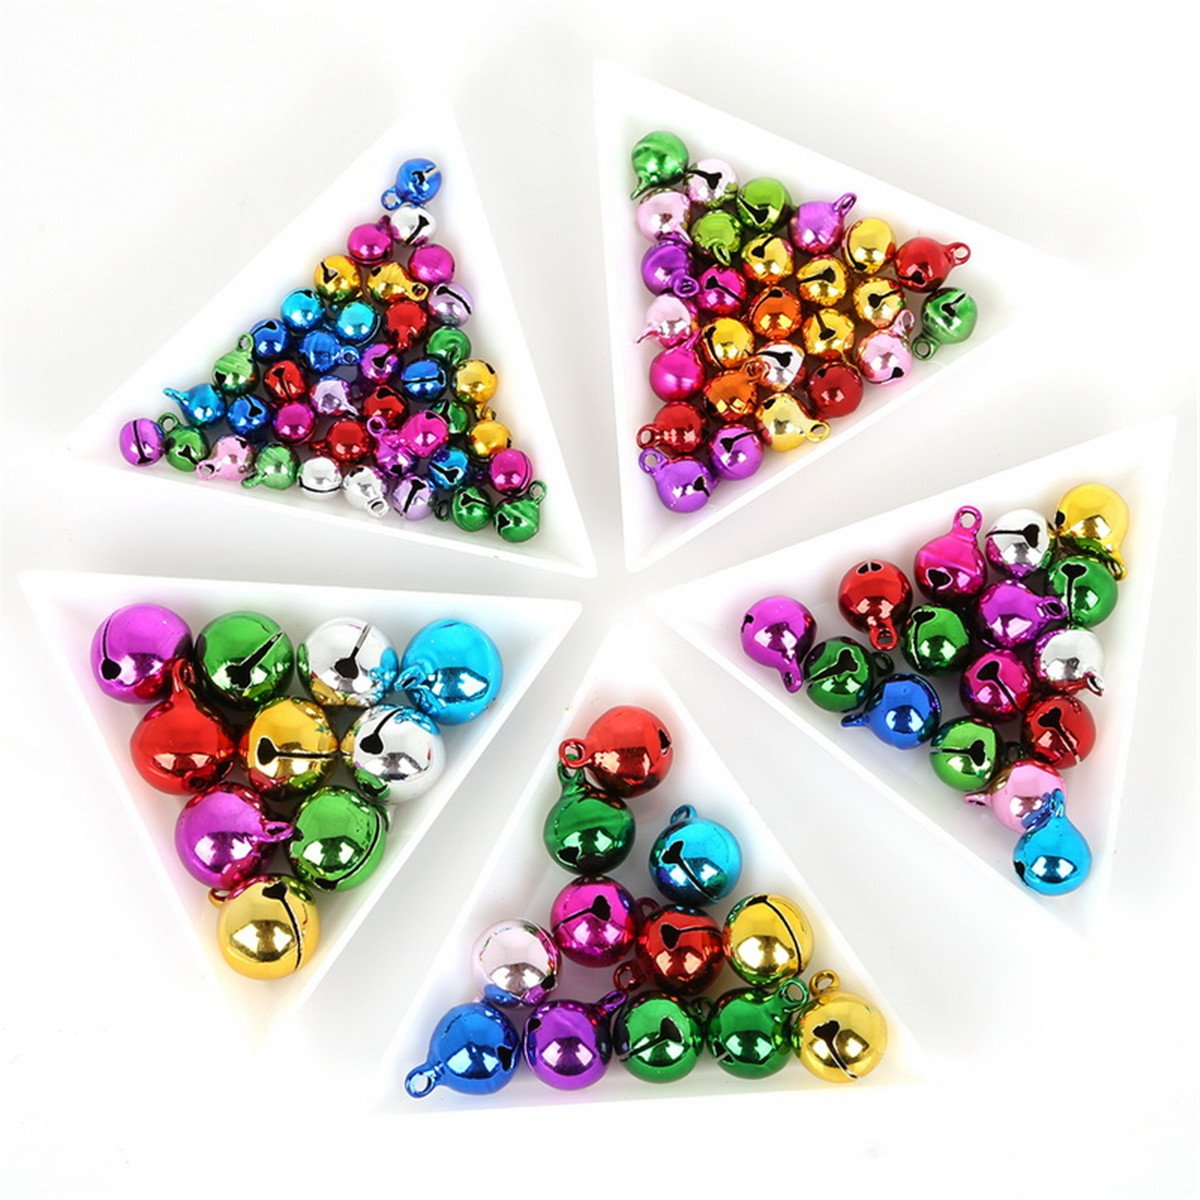 200pcs Mini Christmas Jingle Bells Bulk for DIY Craft Assorted Loose Beads Jewelry Charms Coloful Bells for Festival Wedding Decorations,8mm